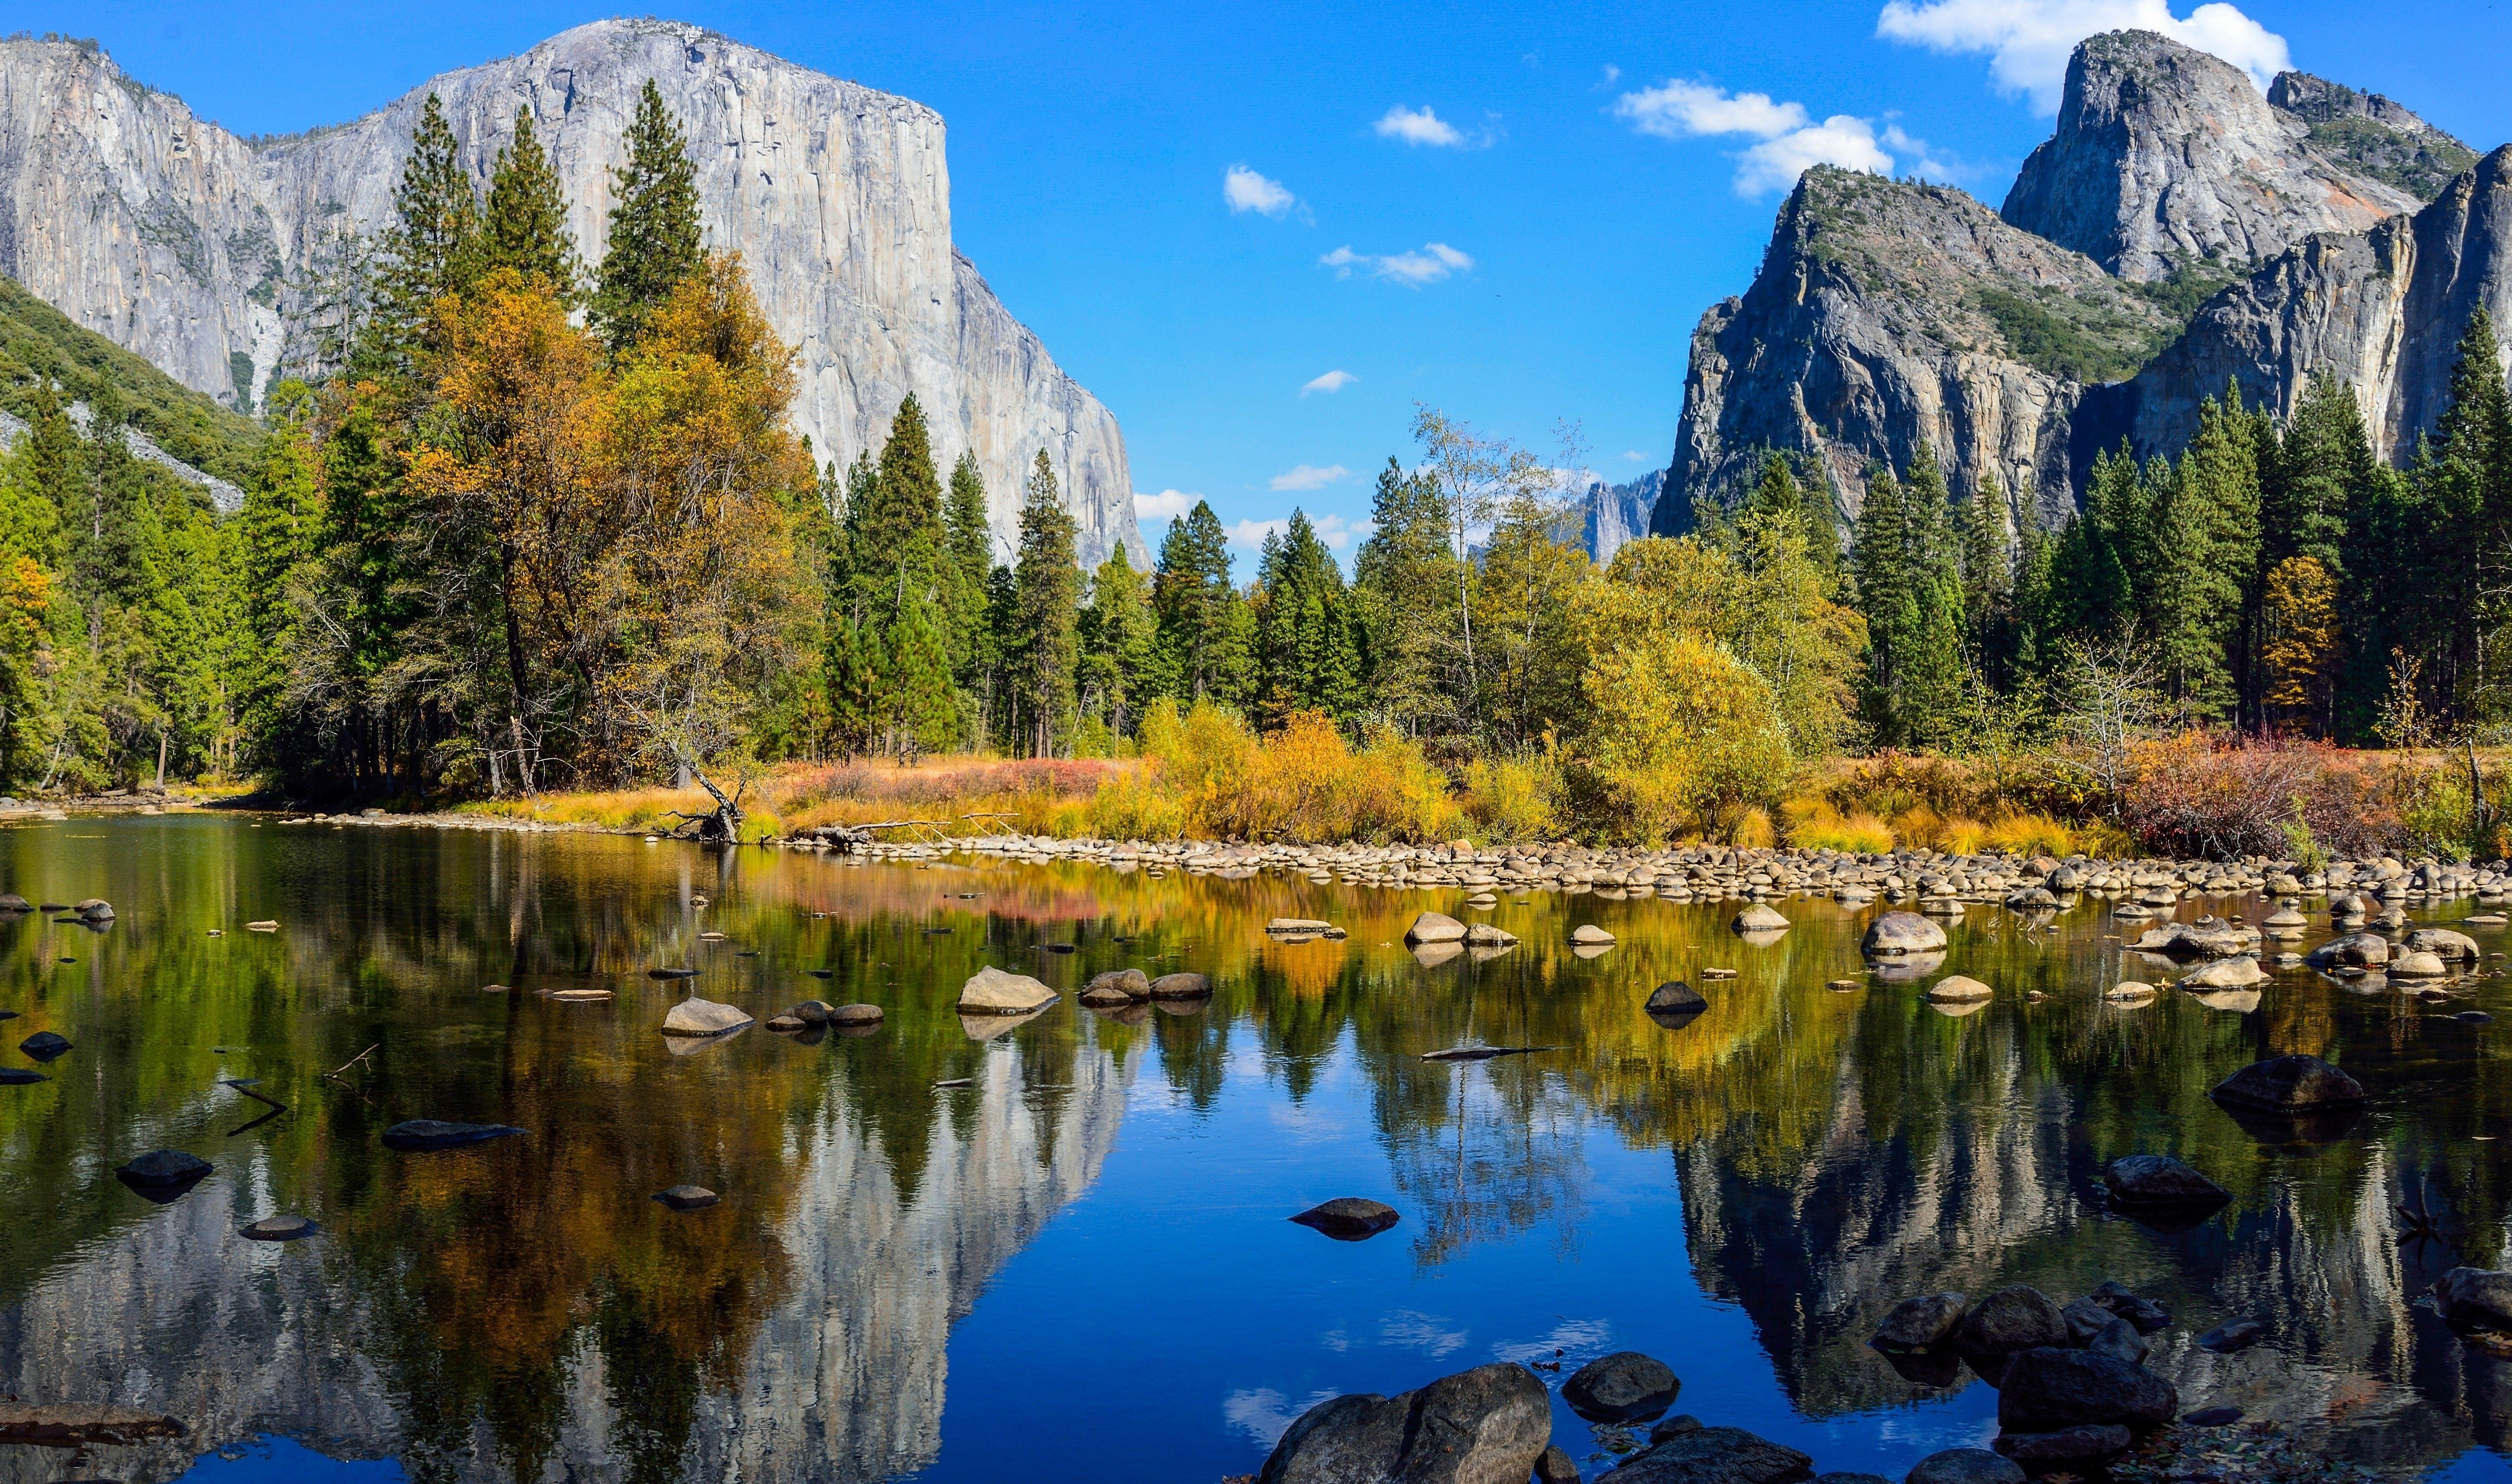 Yosemite National Park Wallpapers, Pictures, Image